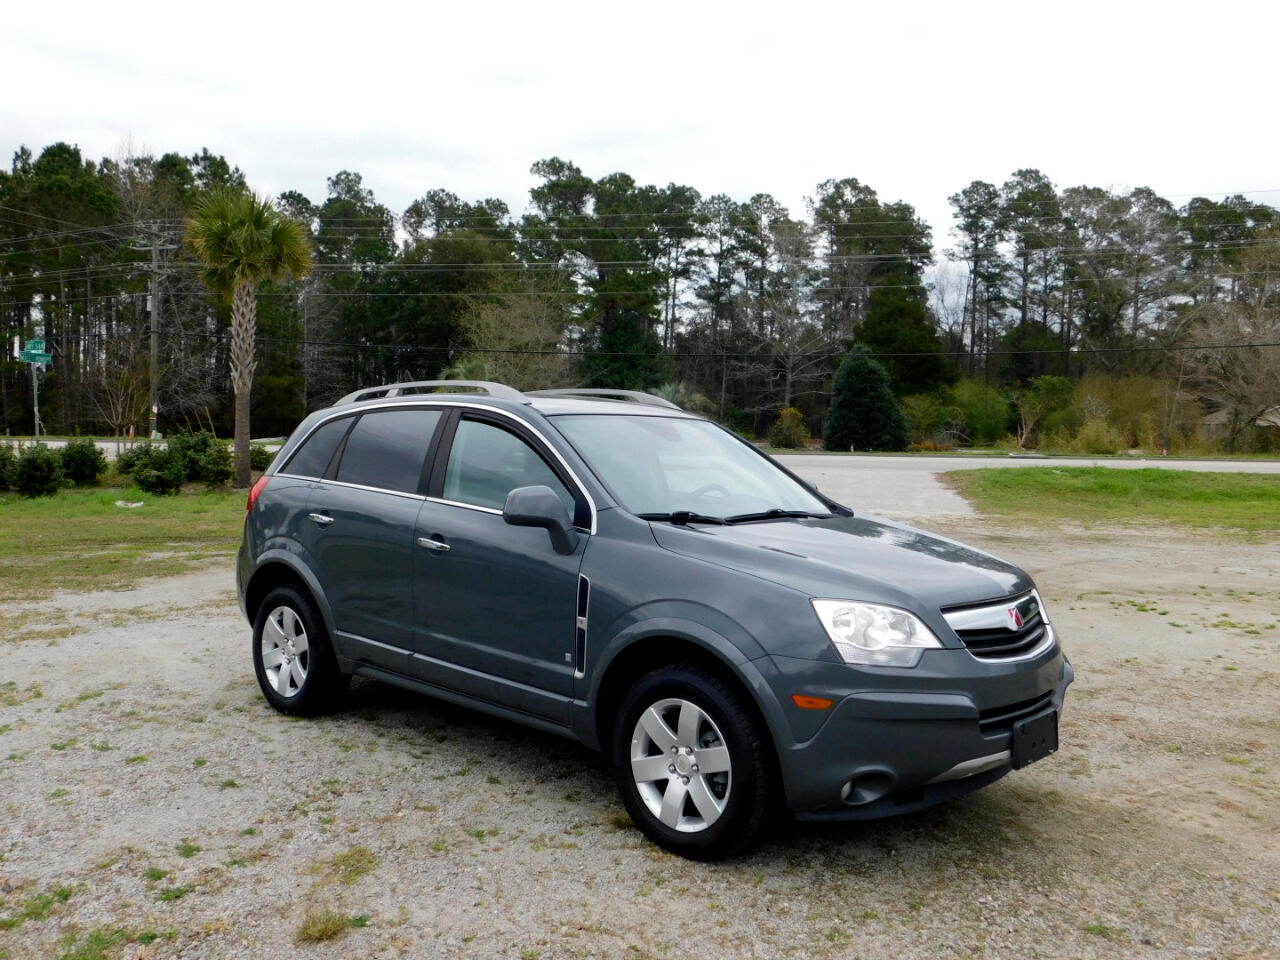 2009 Saturn VUE FWD V6 XR